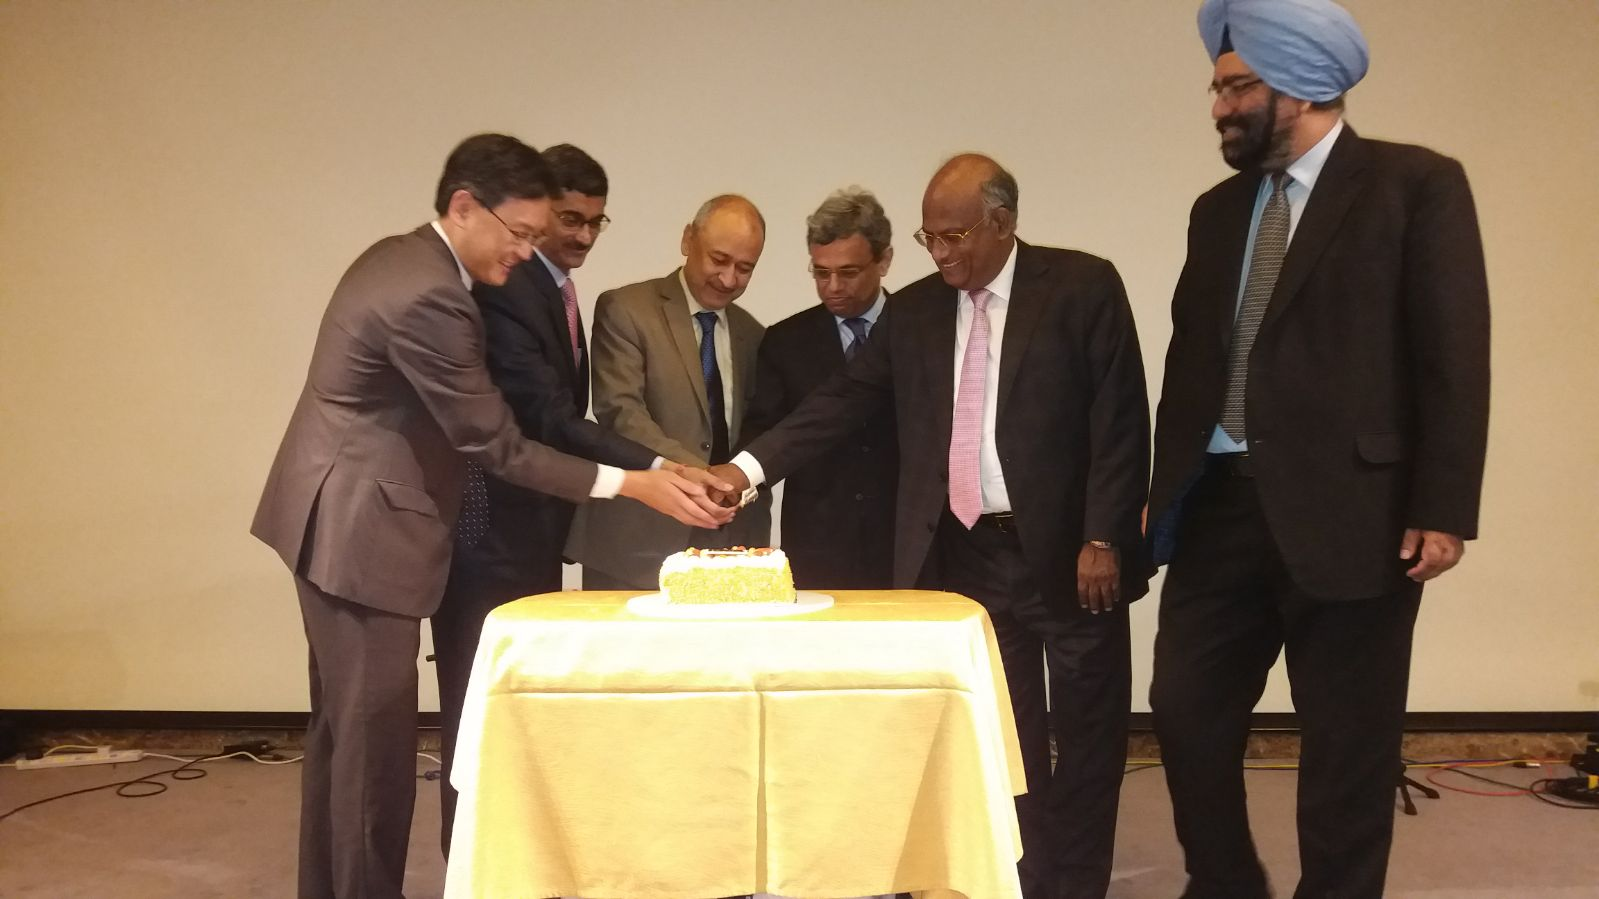 HE Jawed Ashraf, High Commissioner of India, Singapore (centre), Air India's Chairman and Managing Director Pradeep Singh Kharola (3rd left), KV Rao, resident director, ASEAN region, Tata Sons (2nd right) and other attendees at the cake-cutting ceremony to commemorate Air India's second frequency of service to Singapore. Photo courtesy: Air India